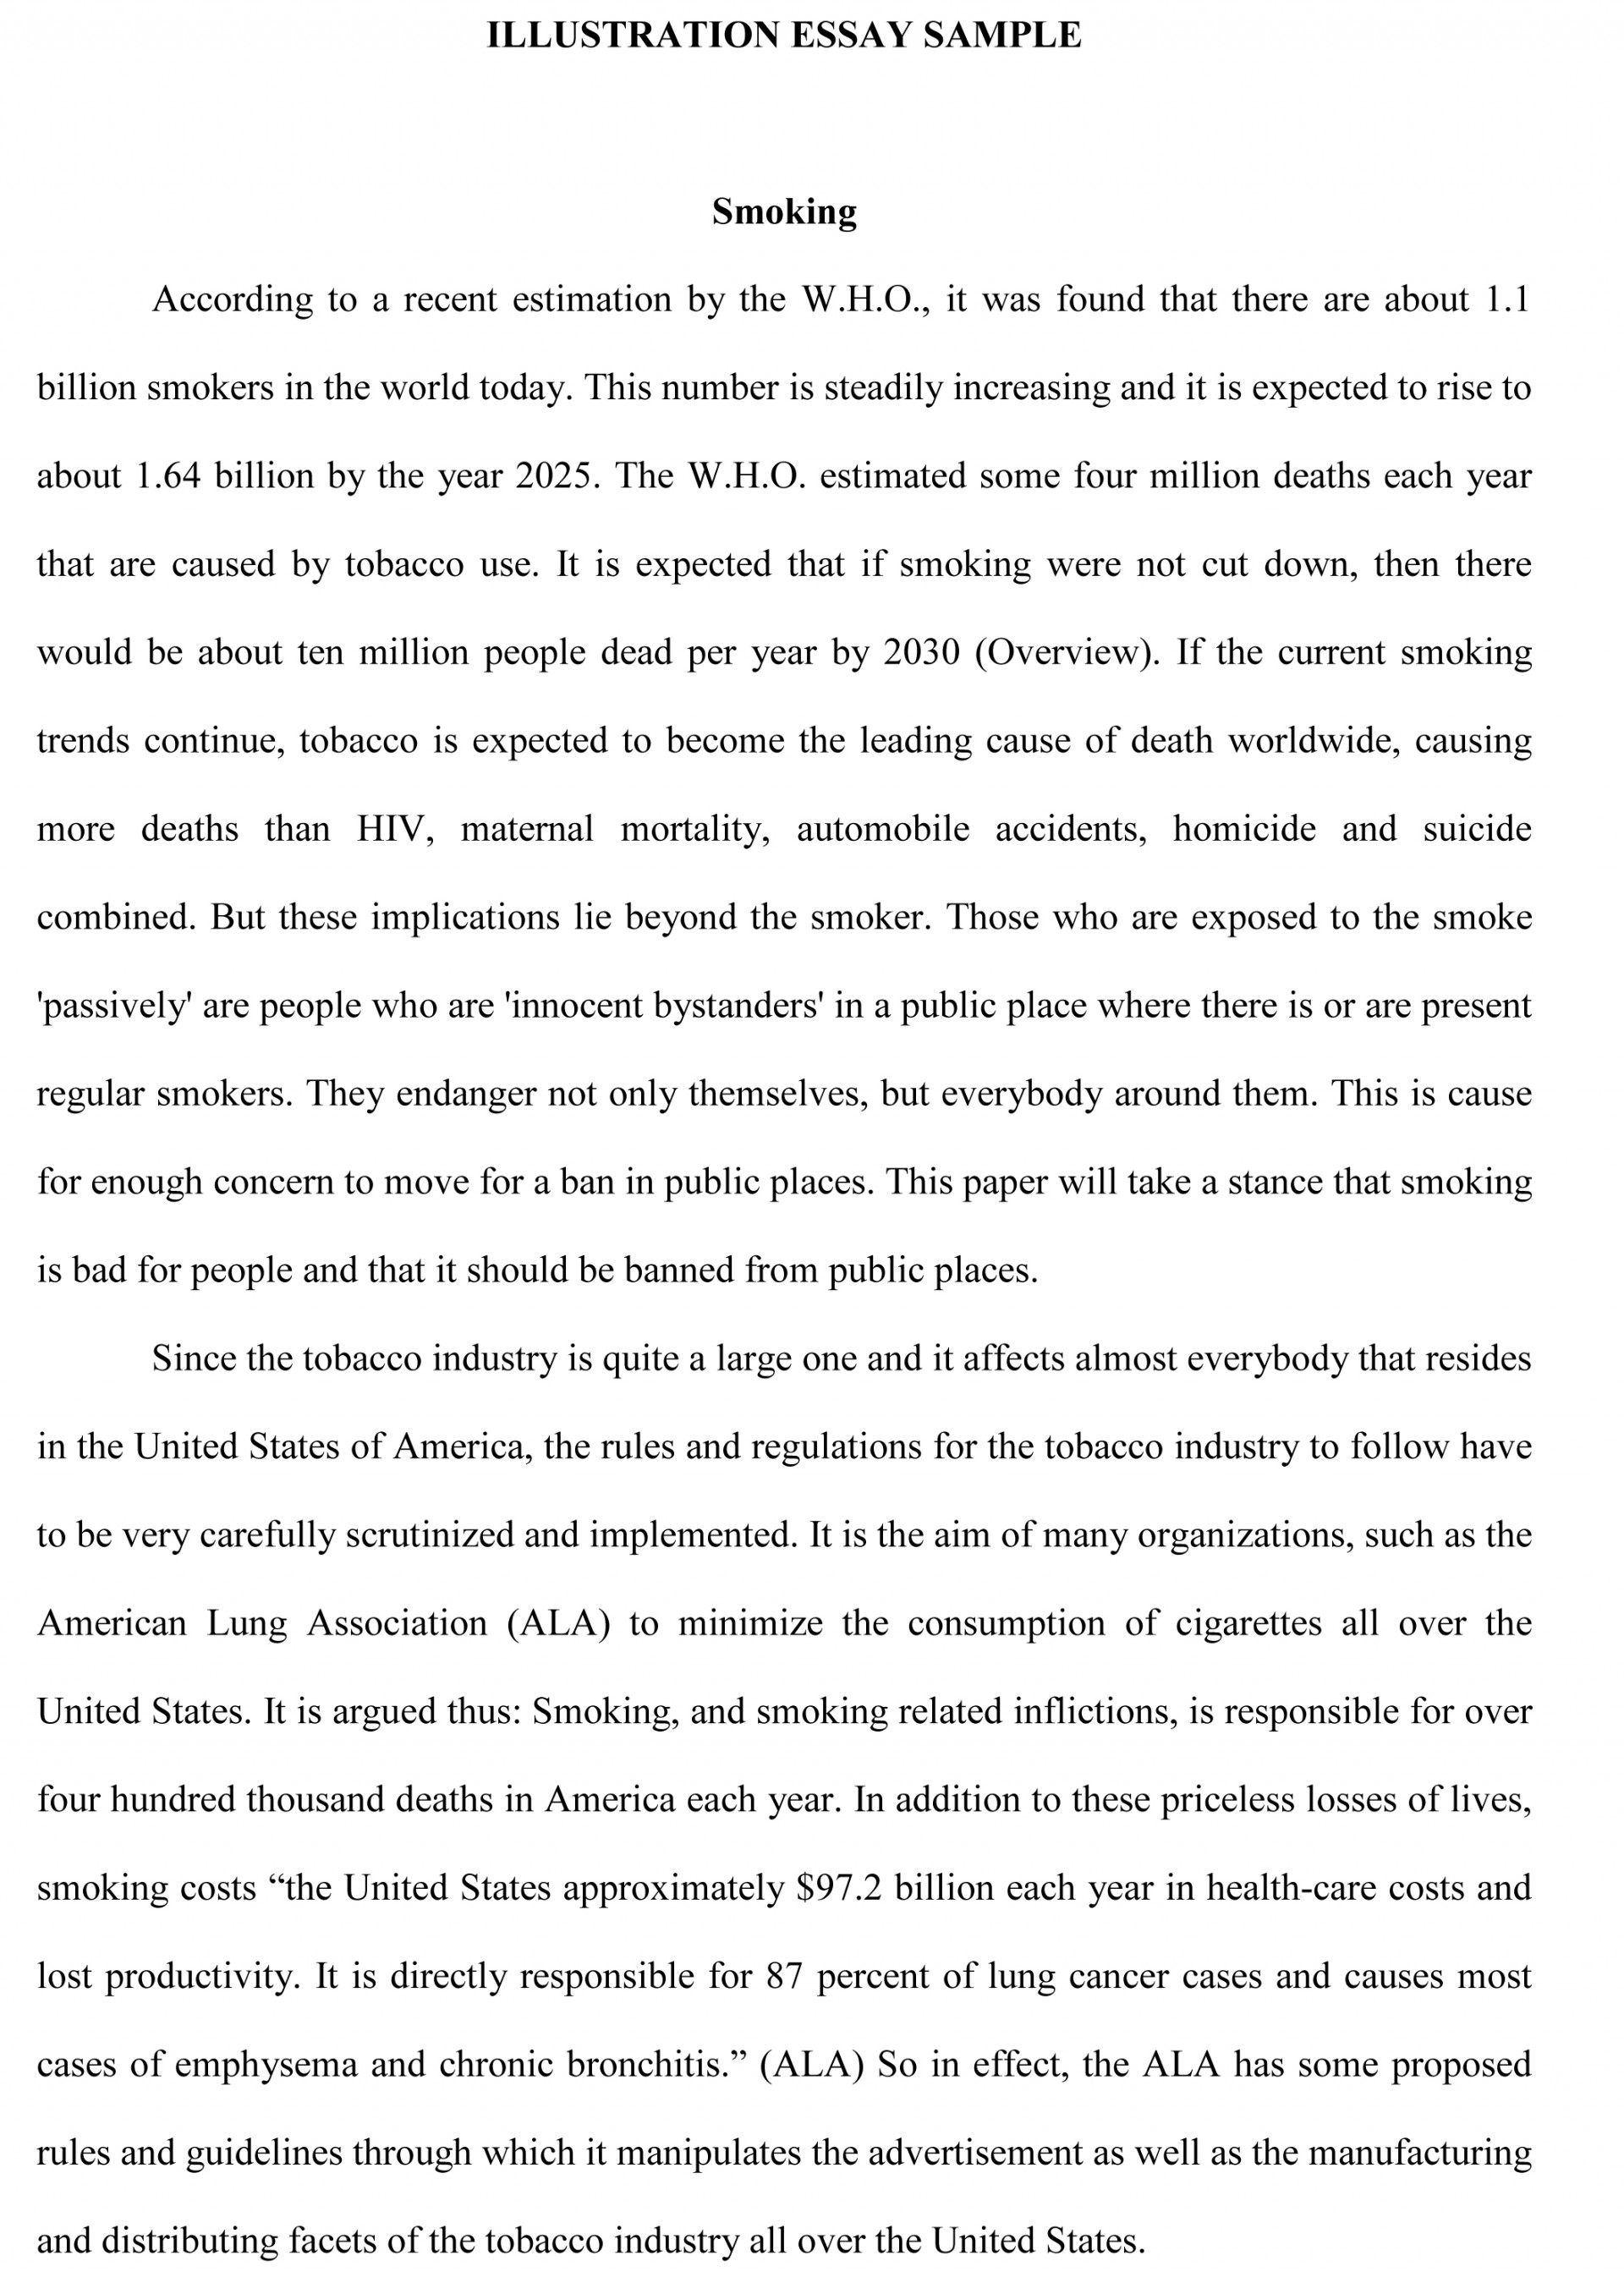 001 Essay Example Illustration Sample Examples Of How To Start Dreaded An Informative Introduction Write About Yourself Pdf 1920